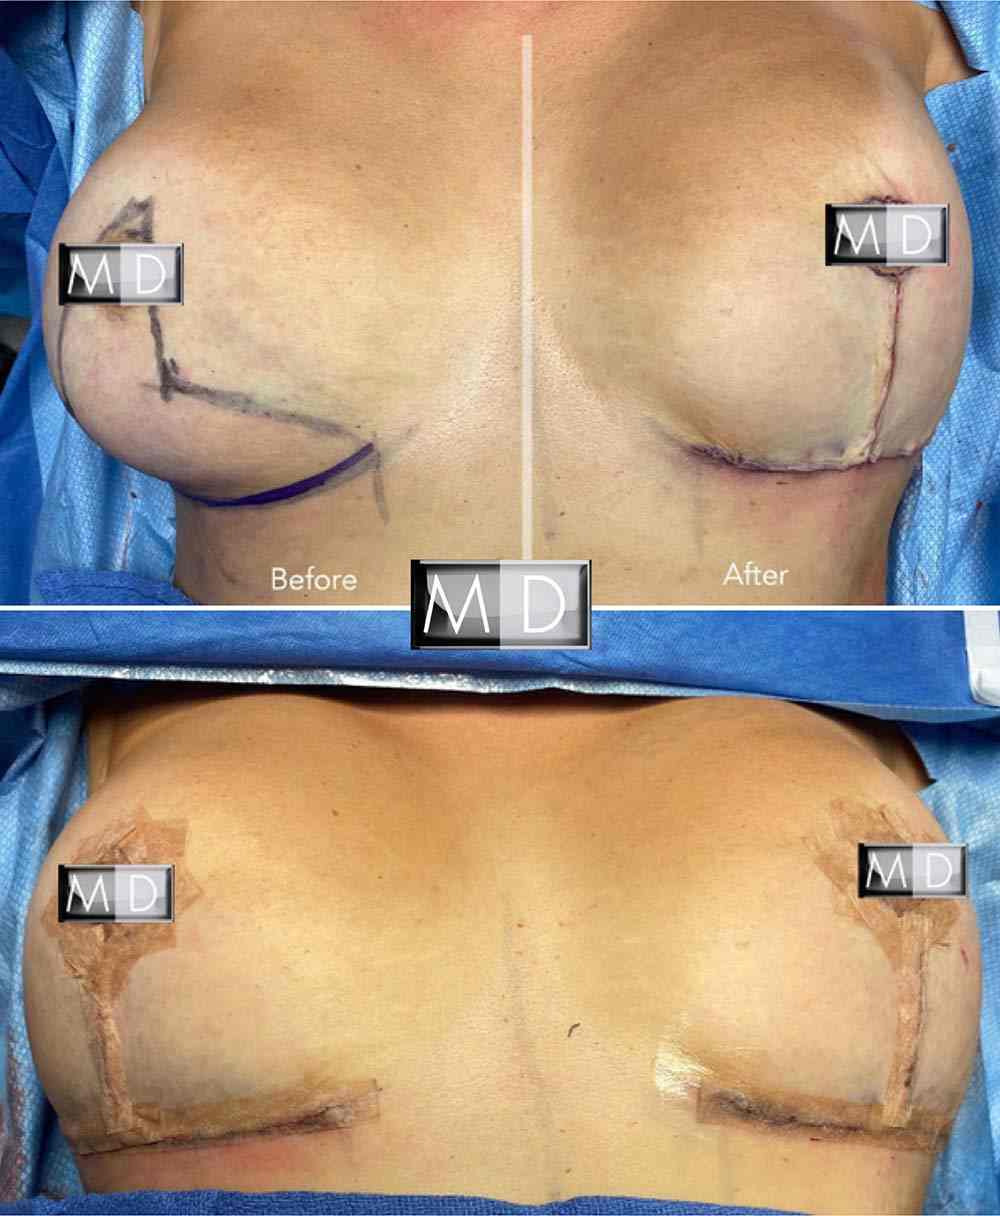 Dr Mark Deuber MD Breast Reduction Before and After2